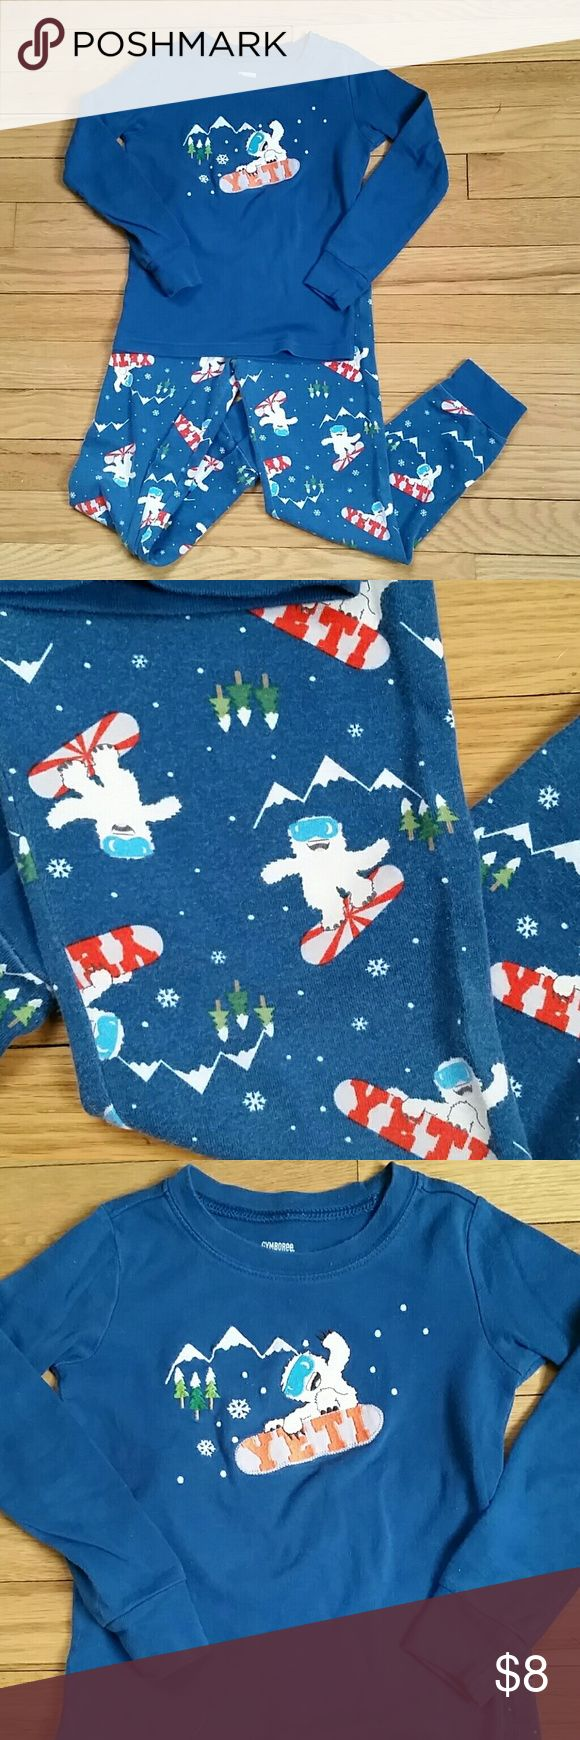 """Size 6 Gymboree pajamas Size 6 long sleeve / long pant 100% cotton pajamas.  * Teal blue (the 2nd picture here is pretty color accurate), fun snowboarding """"Yeti"""" pattern. Top has stitched, applique design. * Made by Gymboree. * In very good condition, always washed in cold. Slight signs of wash wear, but no holes or stains or marks at all. * Pants measure 26-1/2 inches in length, from waist to cuff.  ** See my closet for more great kids and women's items. Make a bundle and get a discount and…"""